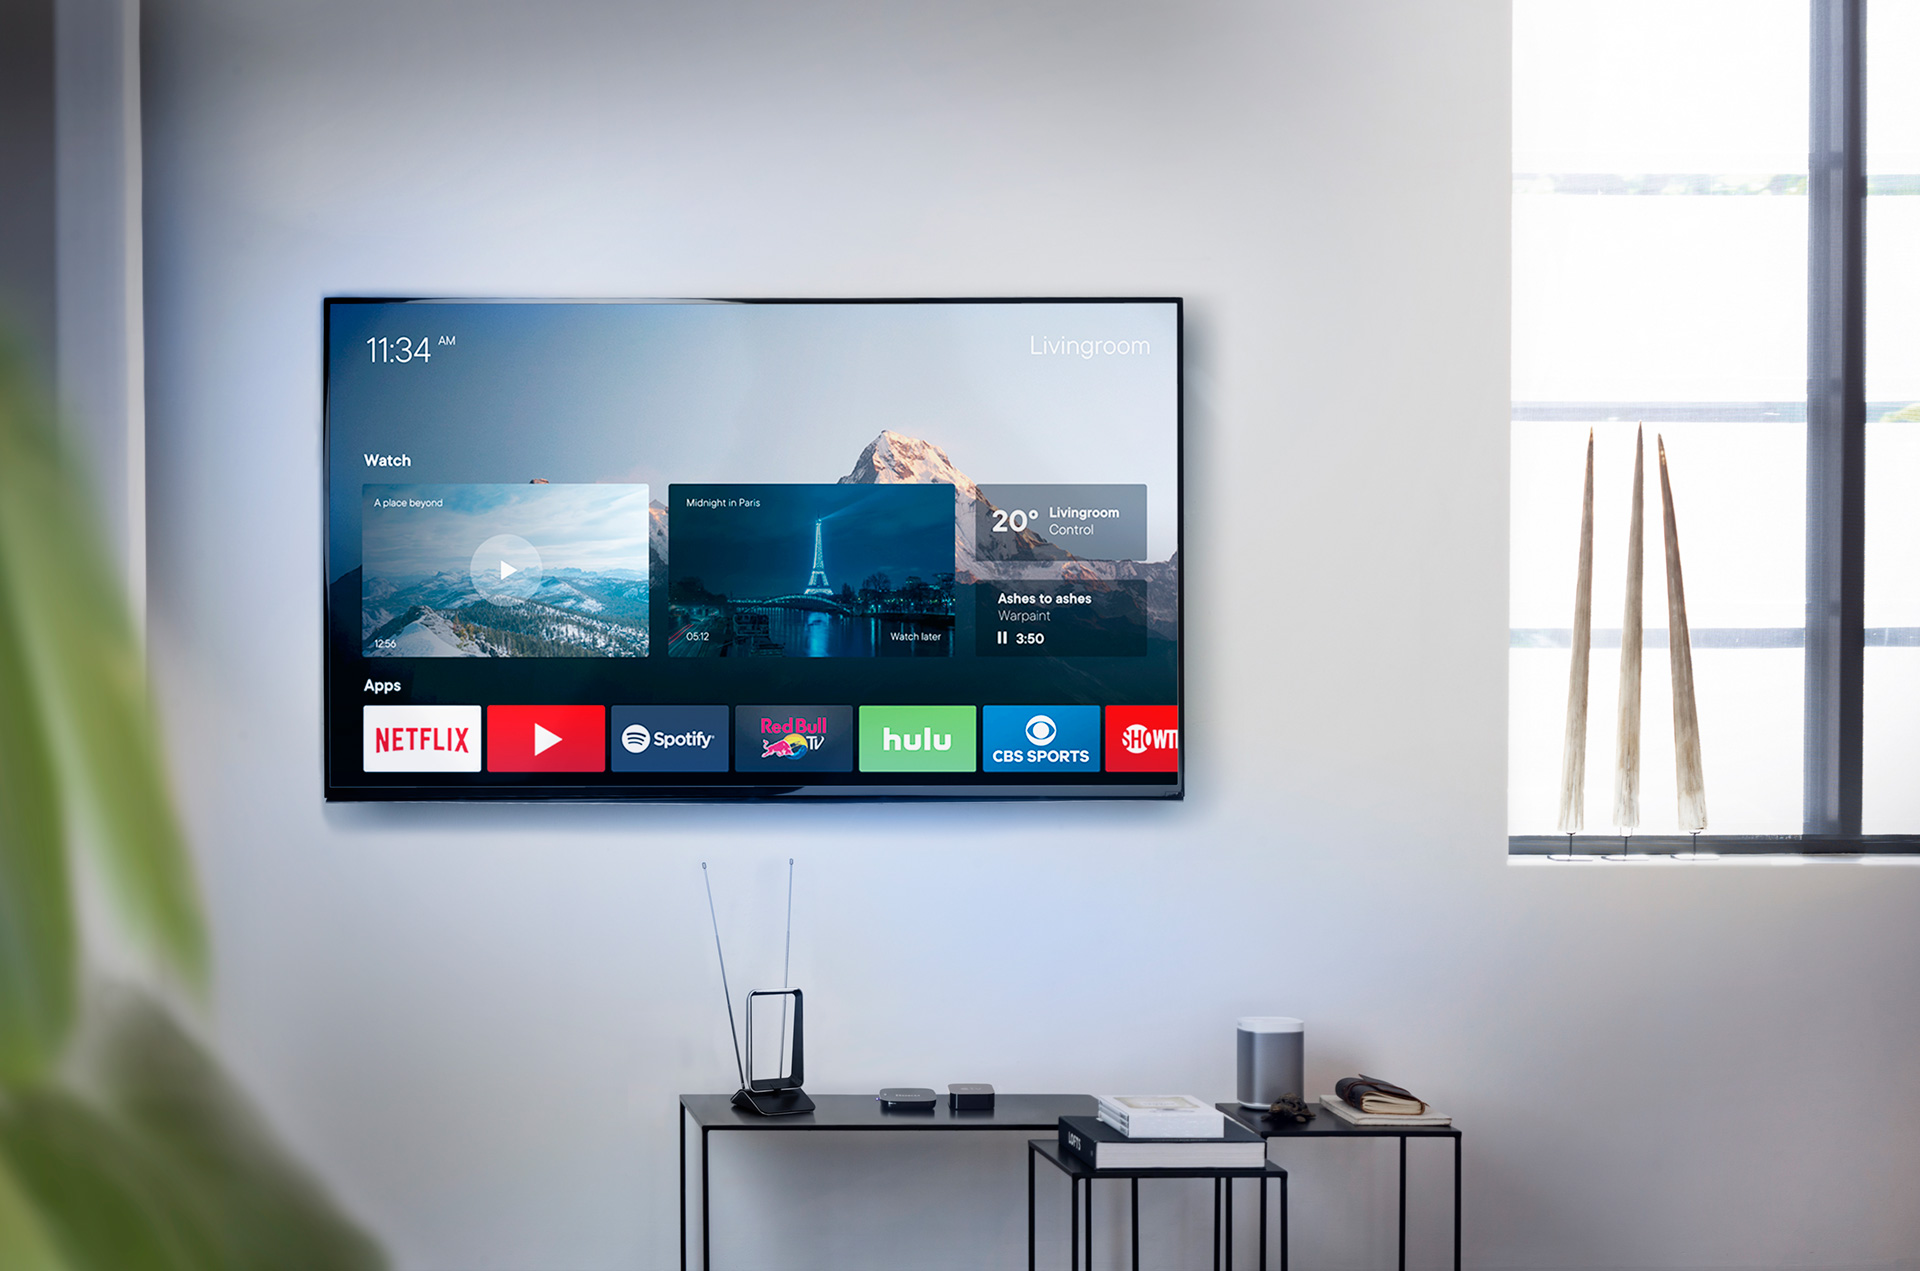 Wirelessly distribute the TV signal around the house in just 3 steps